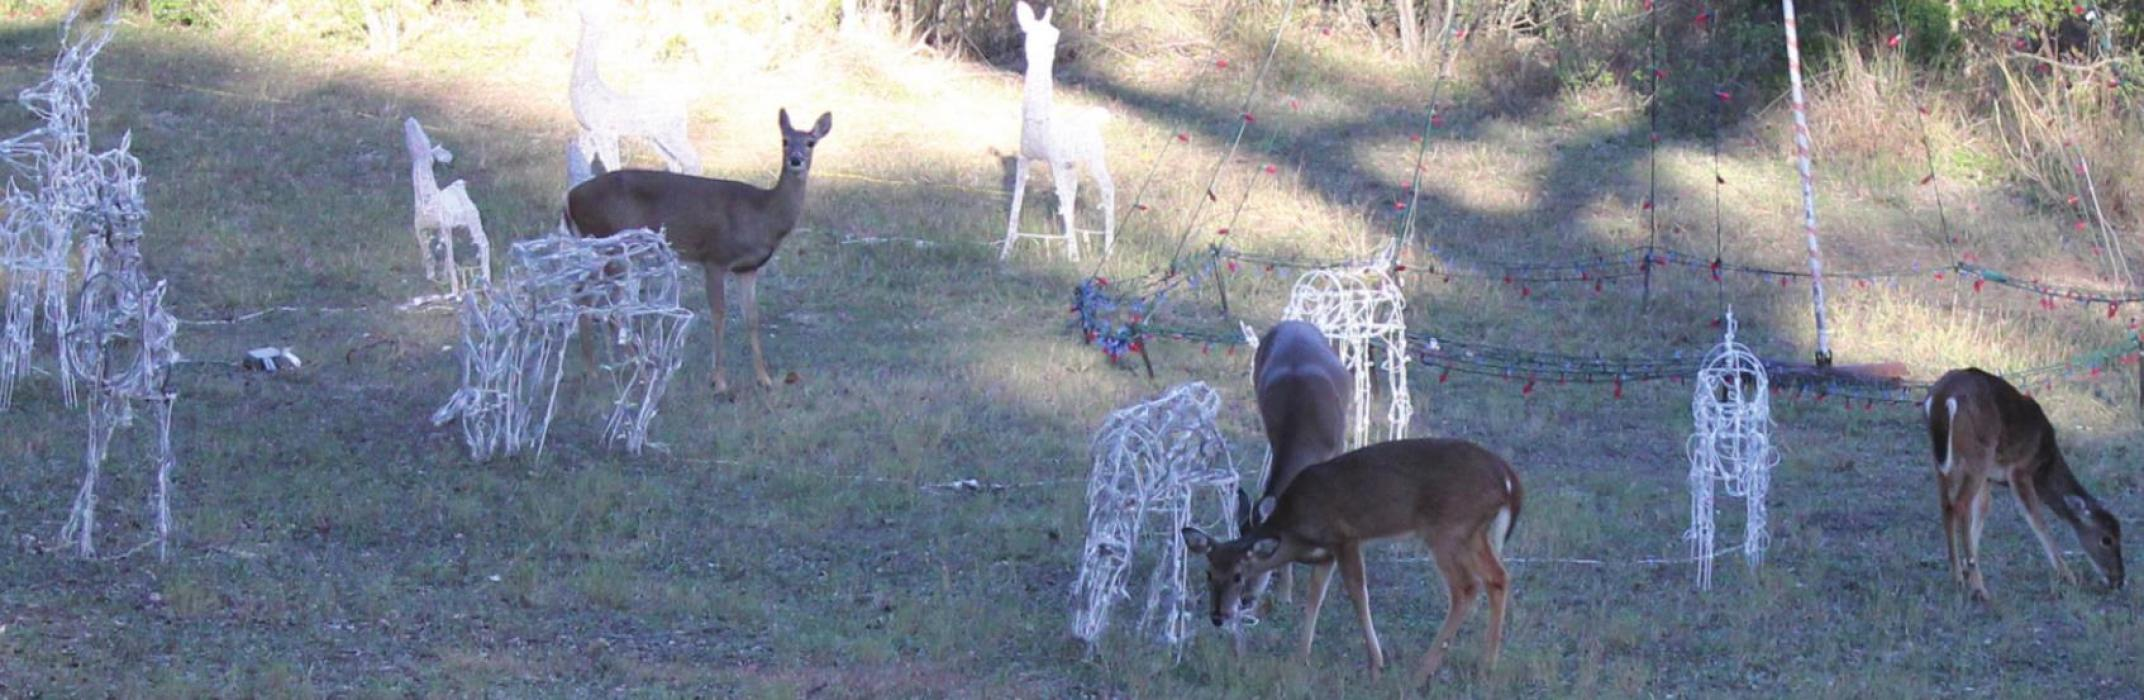 Four real deer mingled with the lighted reindeer frames at the park Tuesday afternoon. Photos by Jeff Wick